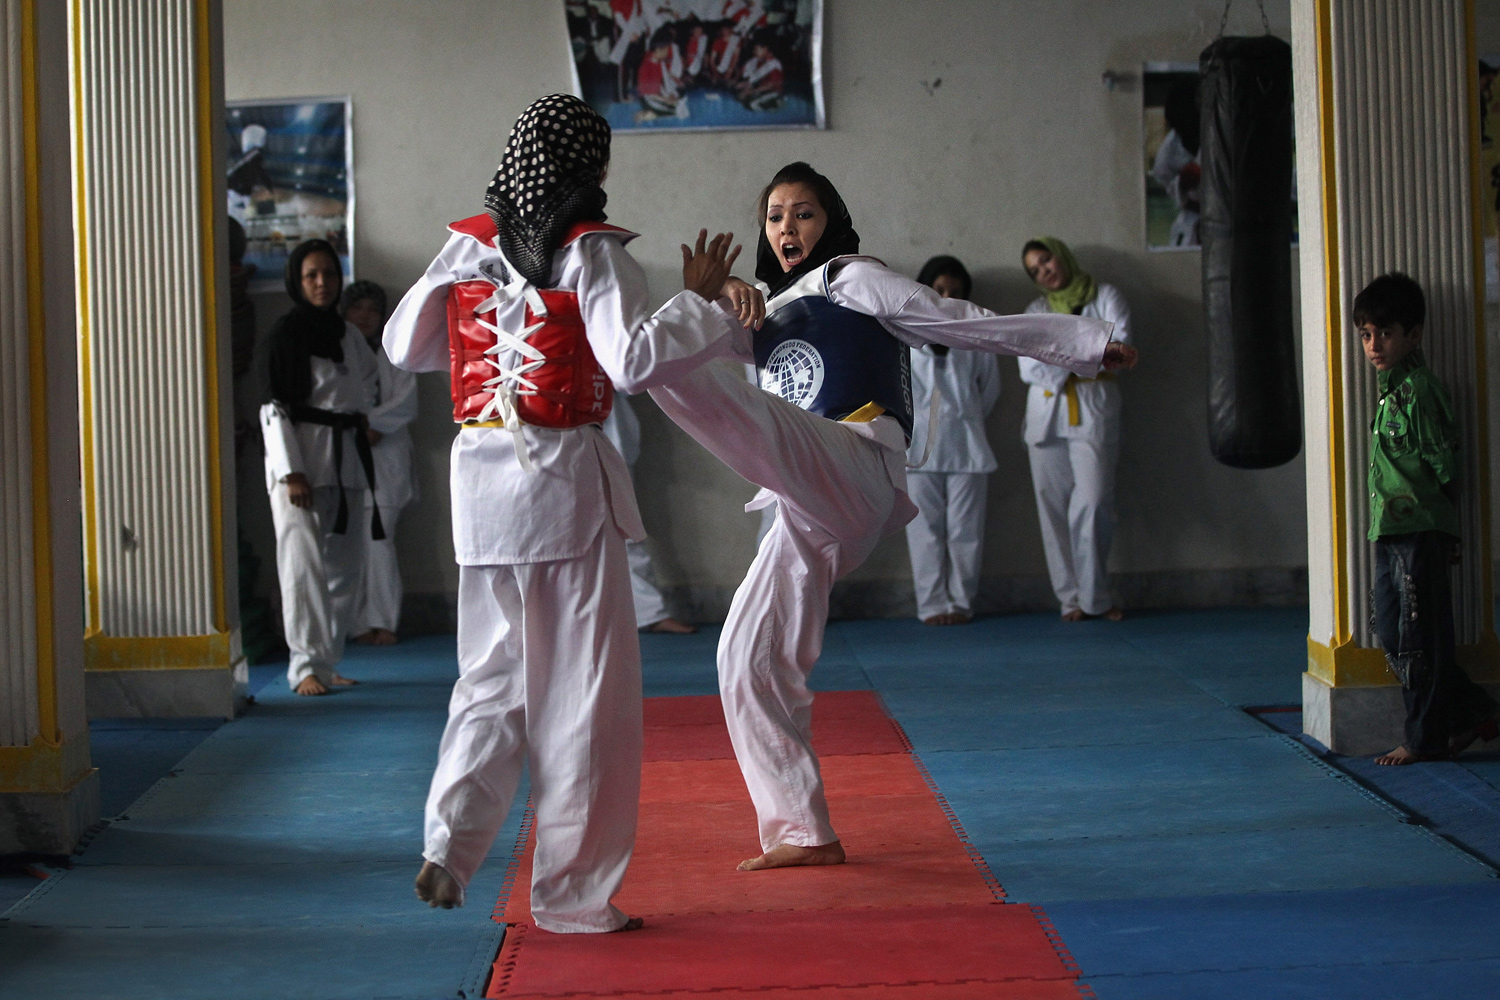 September 7, 2011. Afghan girls practice martial arts at a U.S. funded gym for women in Kabul, Afghanistan. The facility, called the Alzahra Cultural and Sport Association, is the only gym for women in western Kabul and received almost $10,000 as startup money from the U.S. Ambassador's Small Grants Program (ASGP).